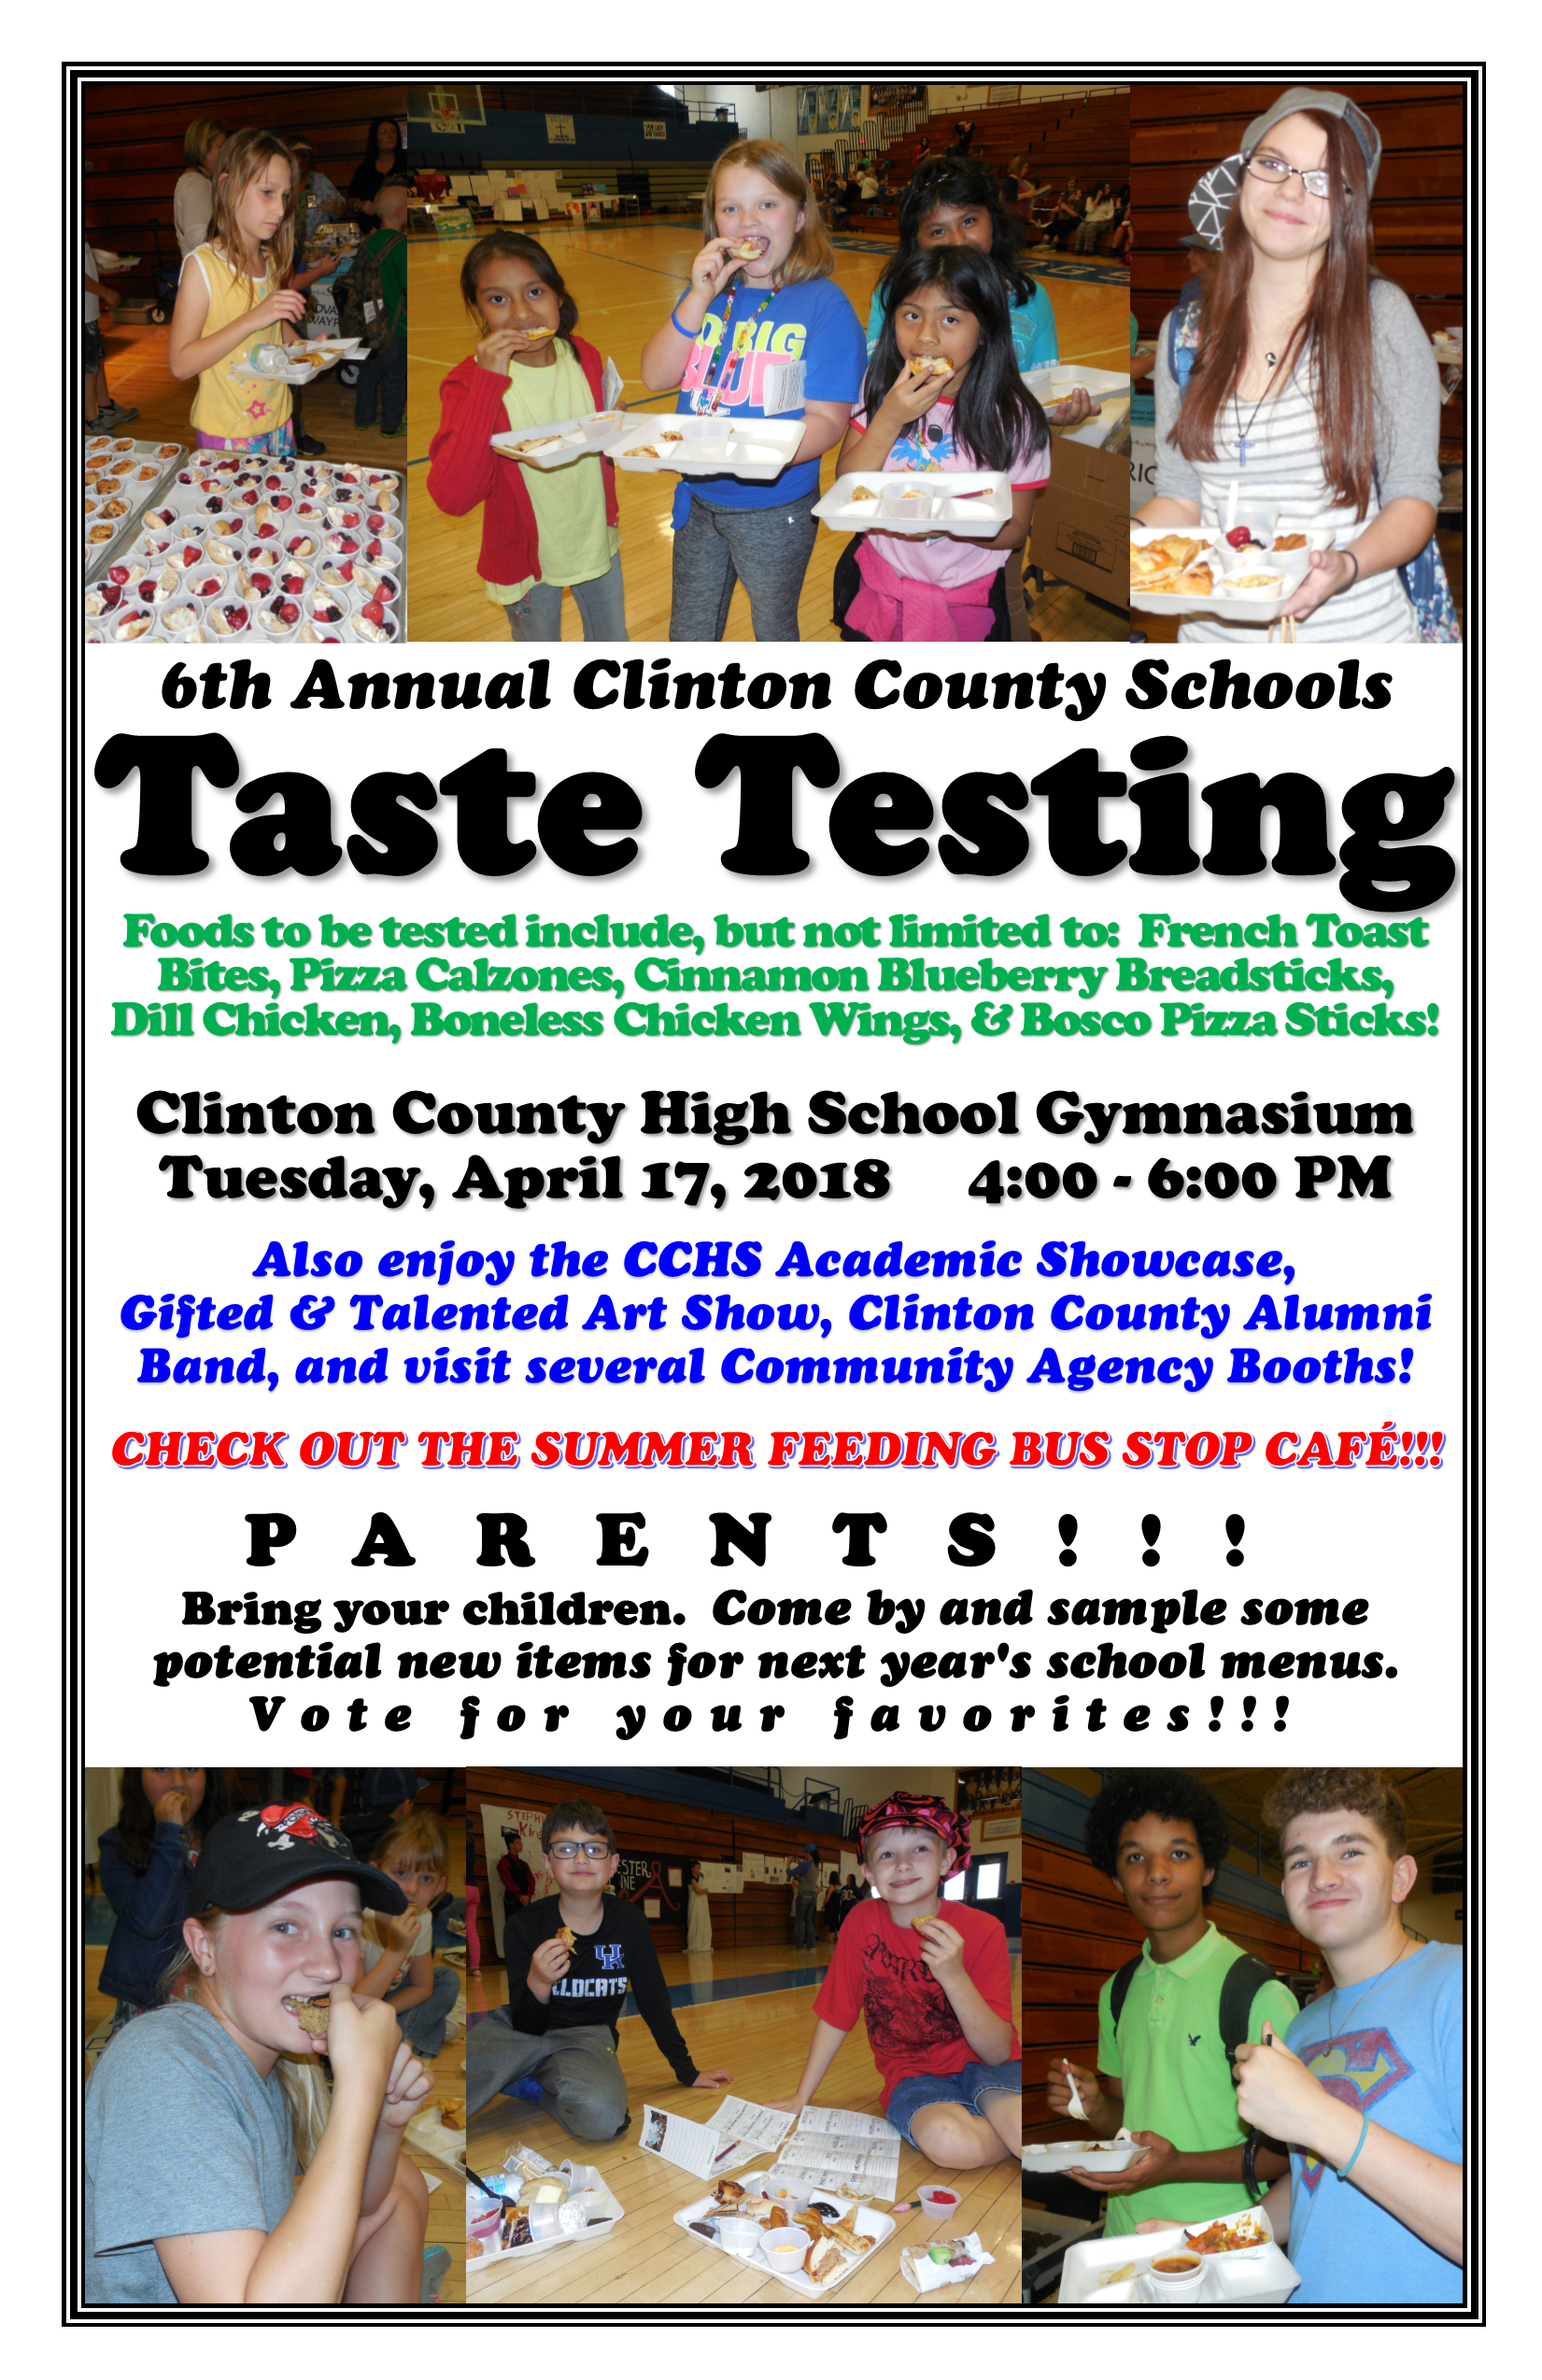 Please join us for the 6th Annual Clinton County Schools Taste Test!